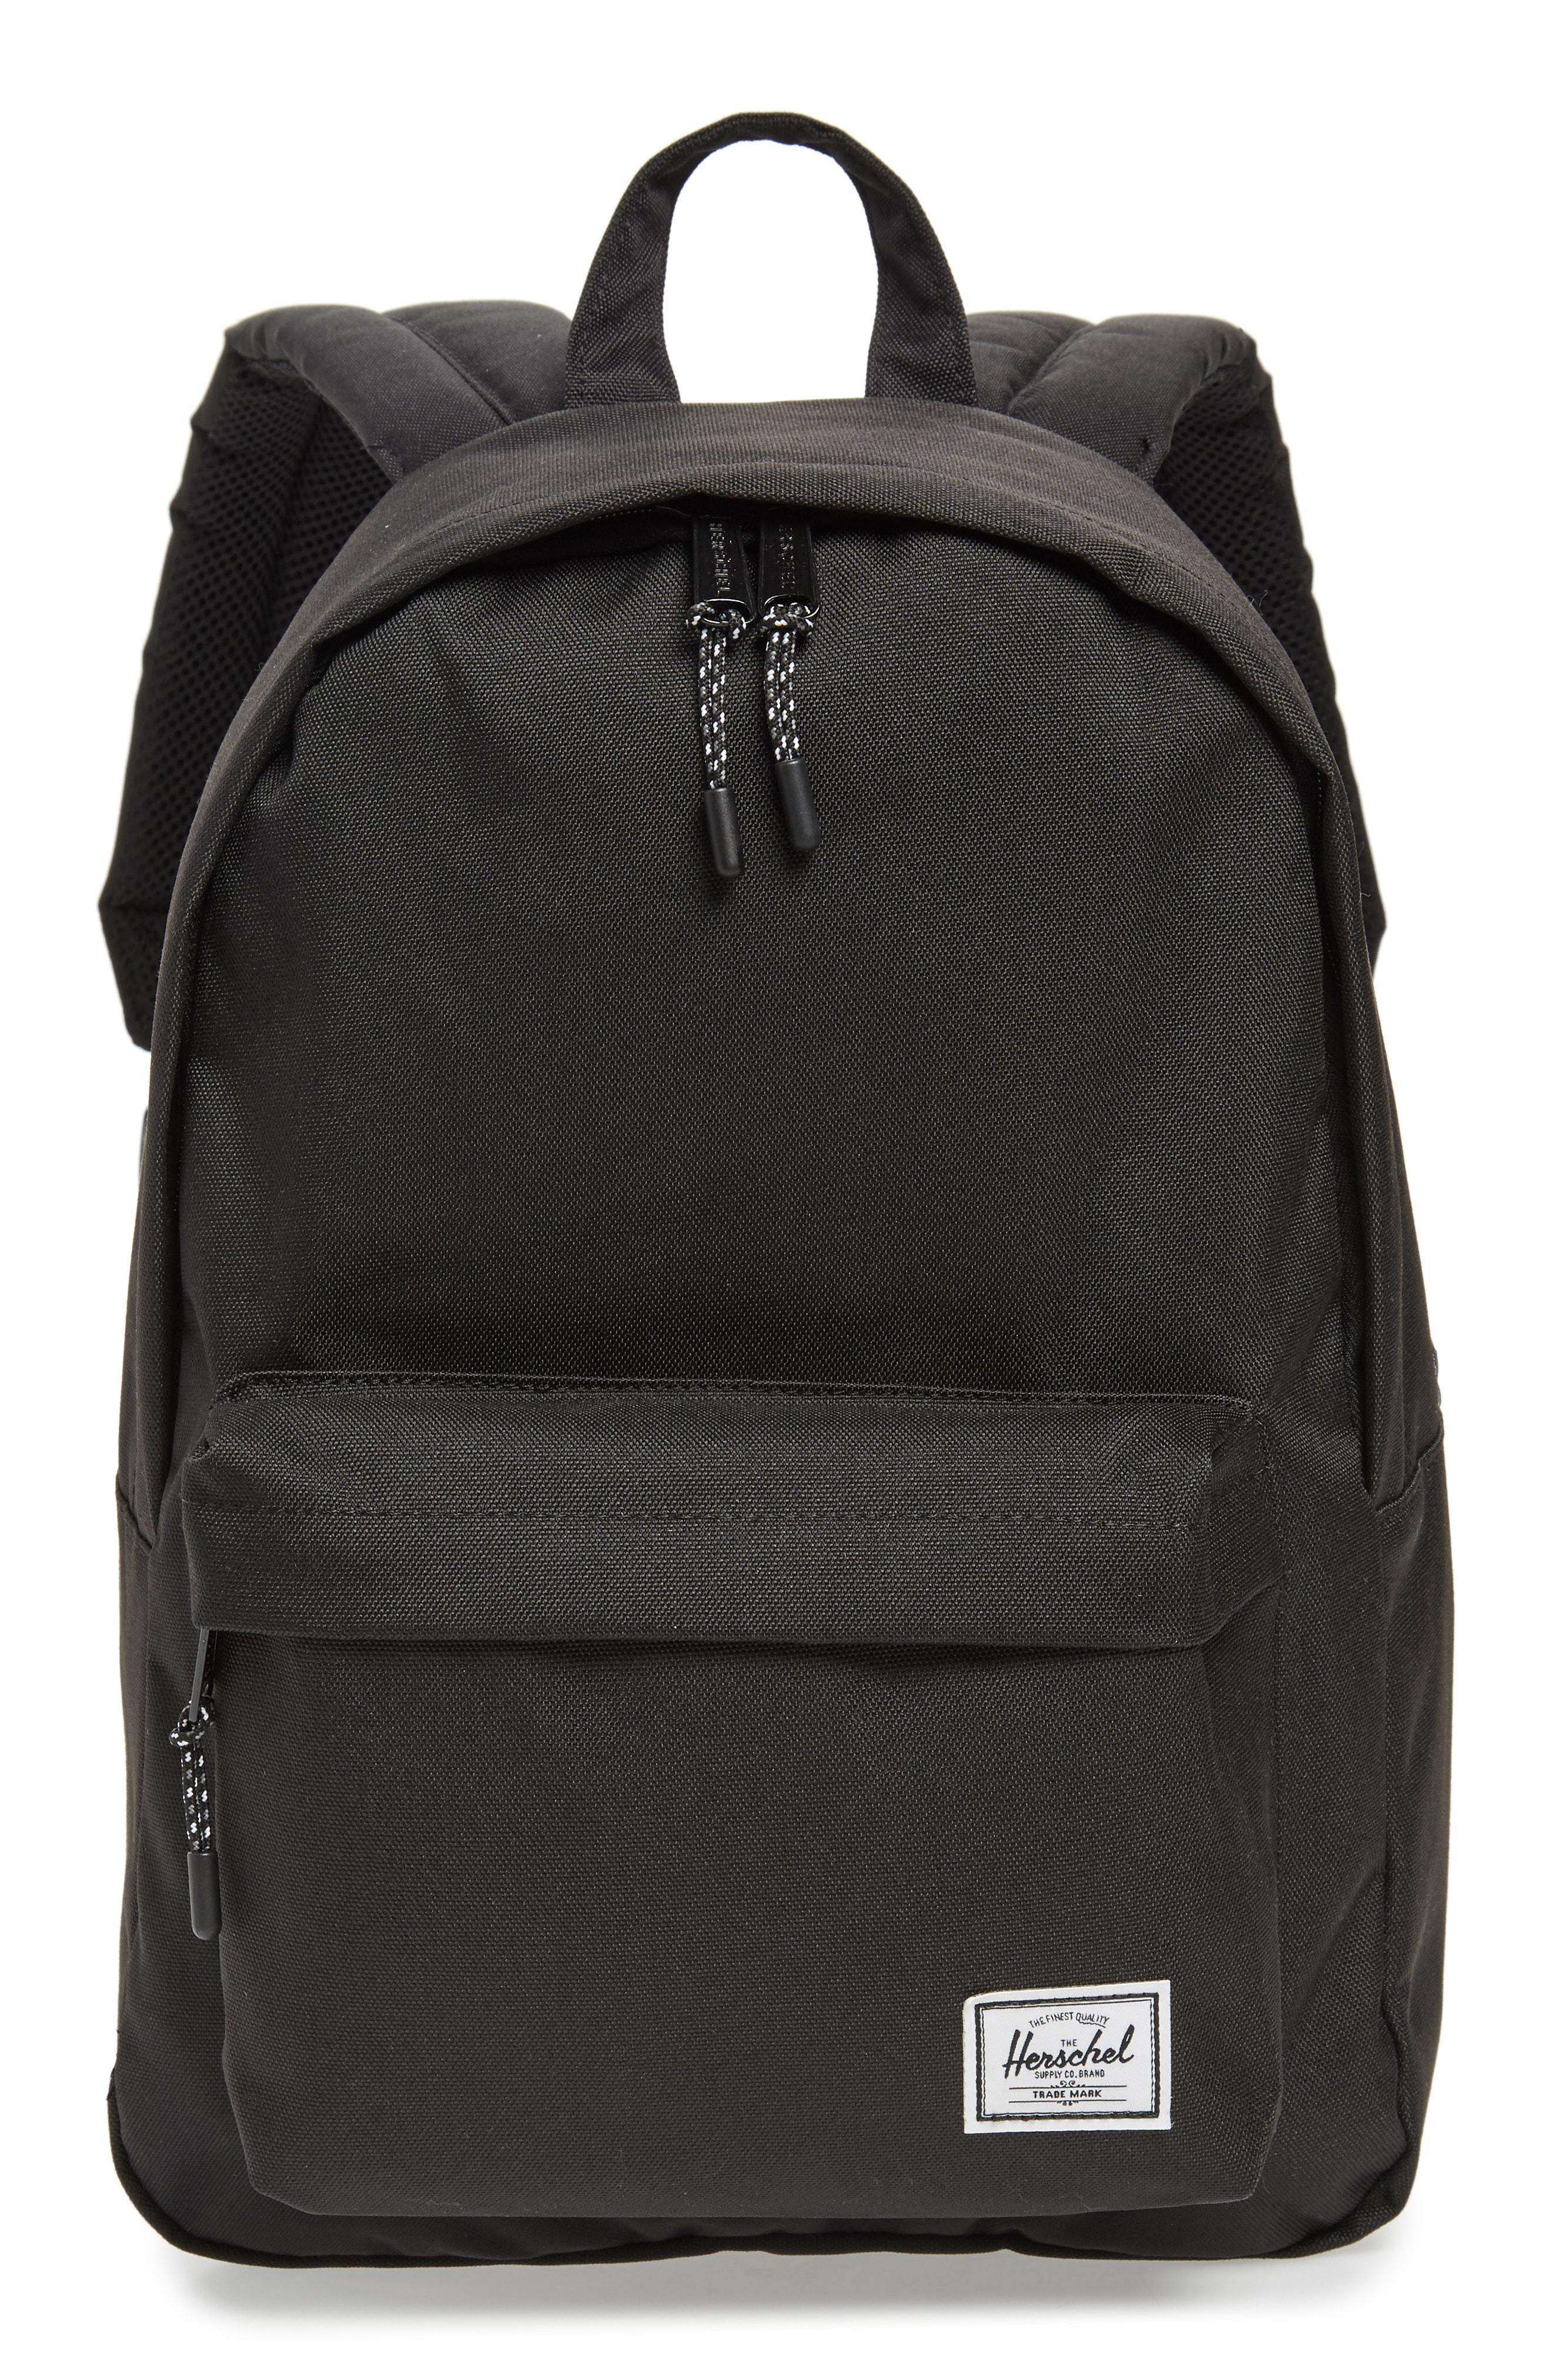 b7afcf3acb1 Lyst - Herschel Supply Co. Classic Mid Volume Backpack in Black